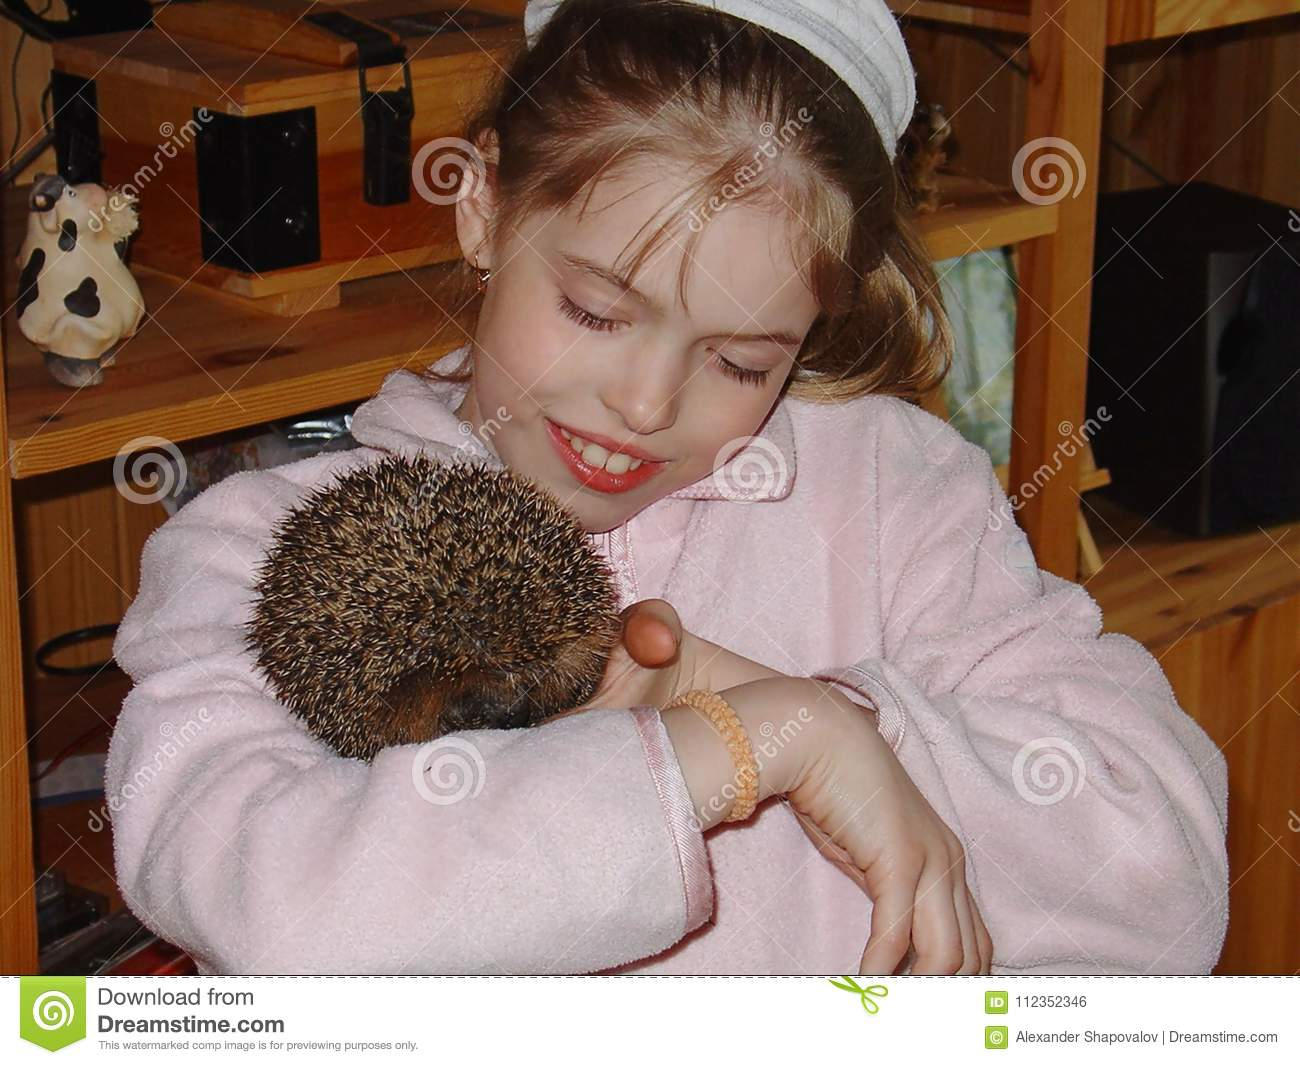 Close up view of a young girl holding a cute hedgehog and smiling.